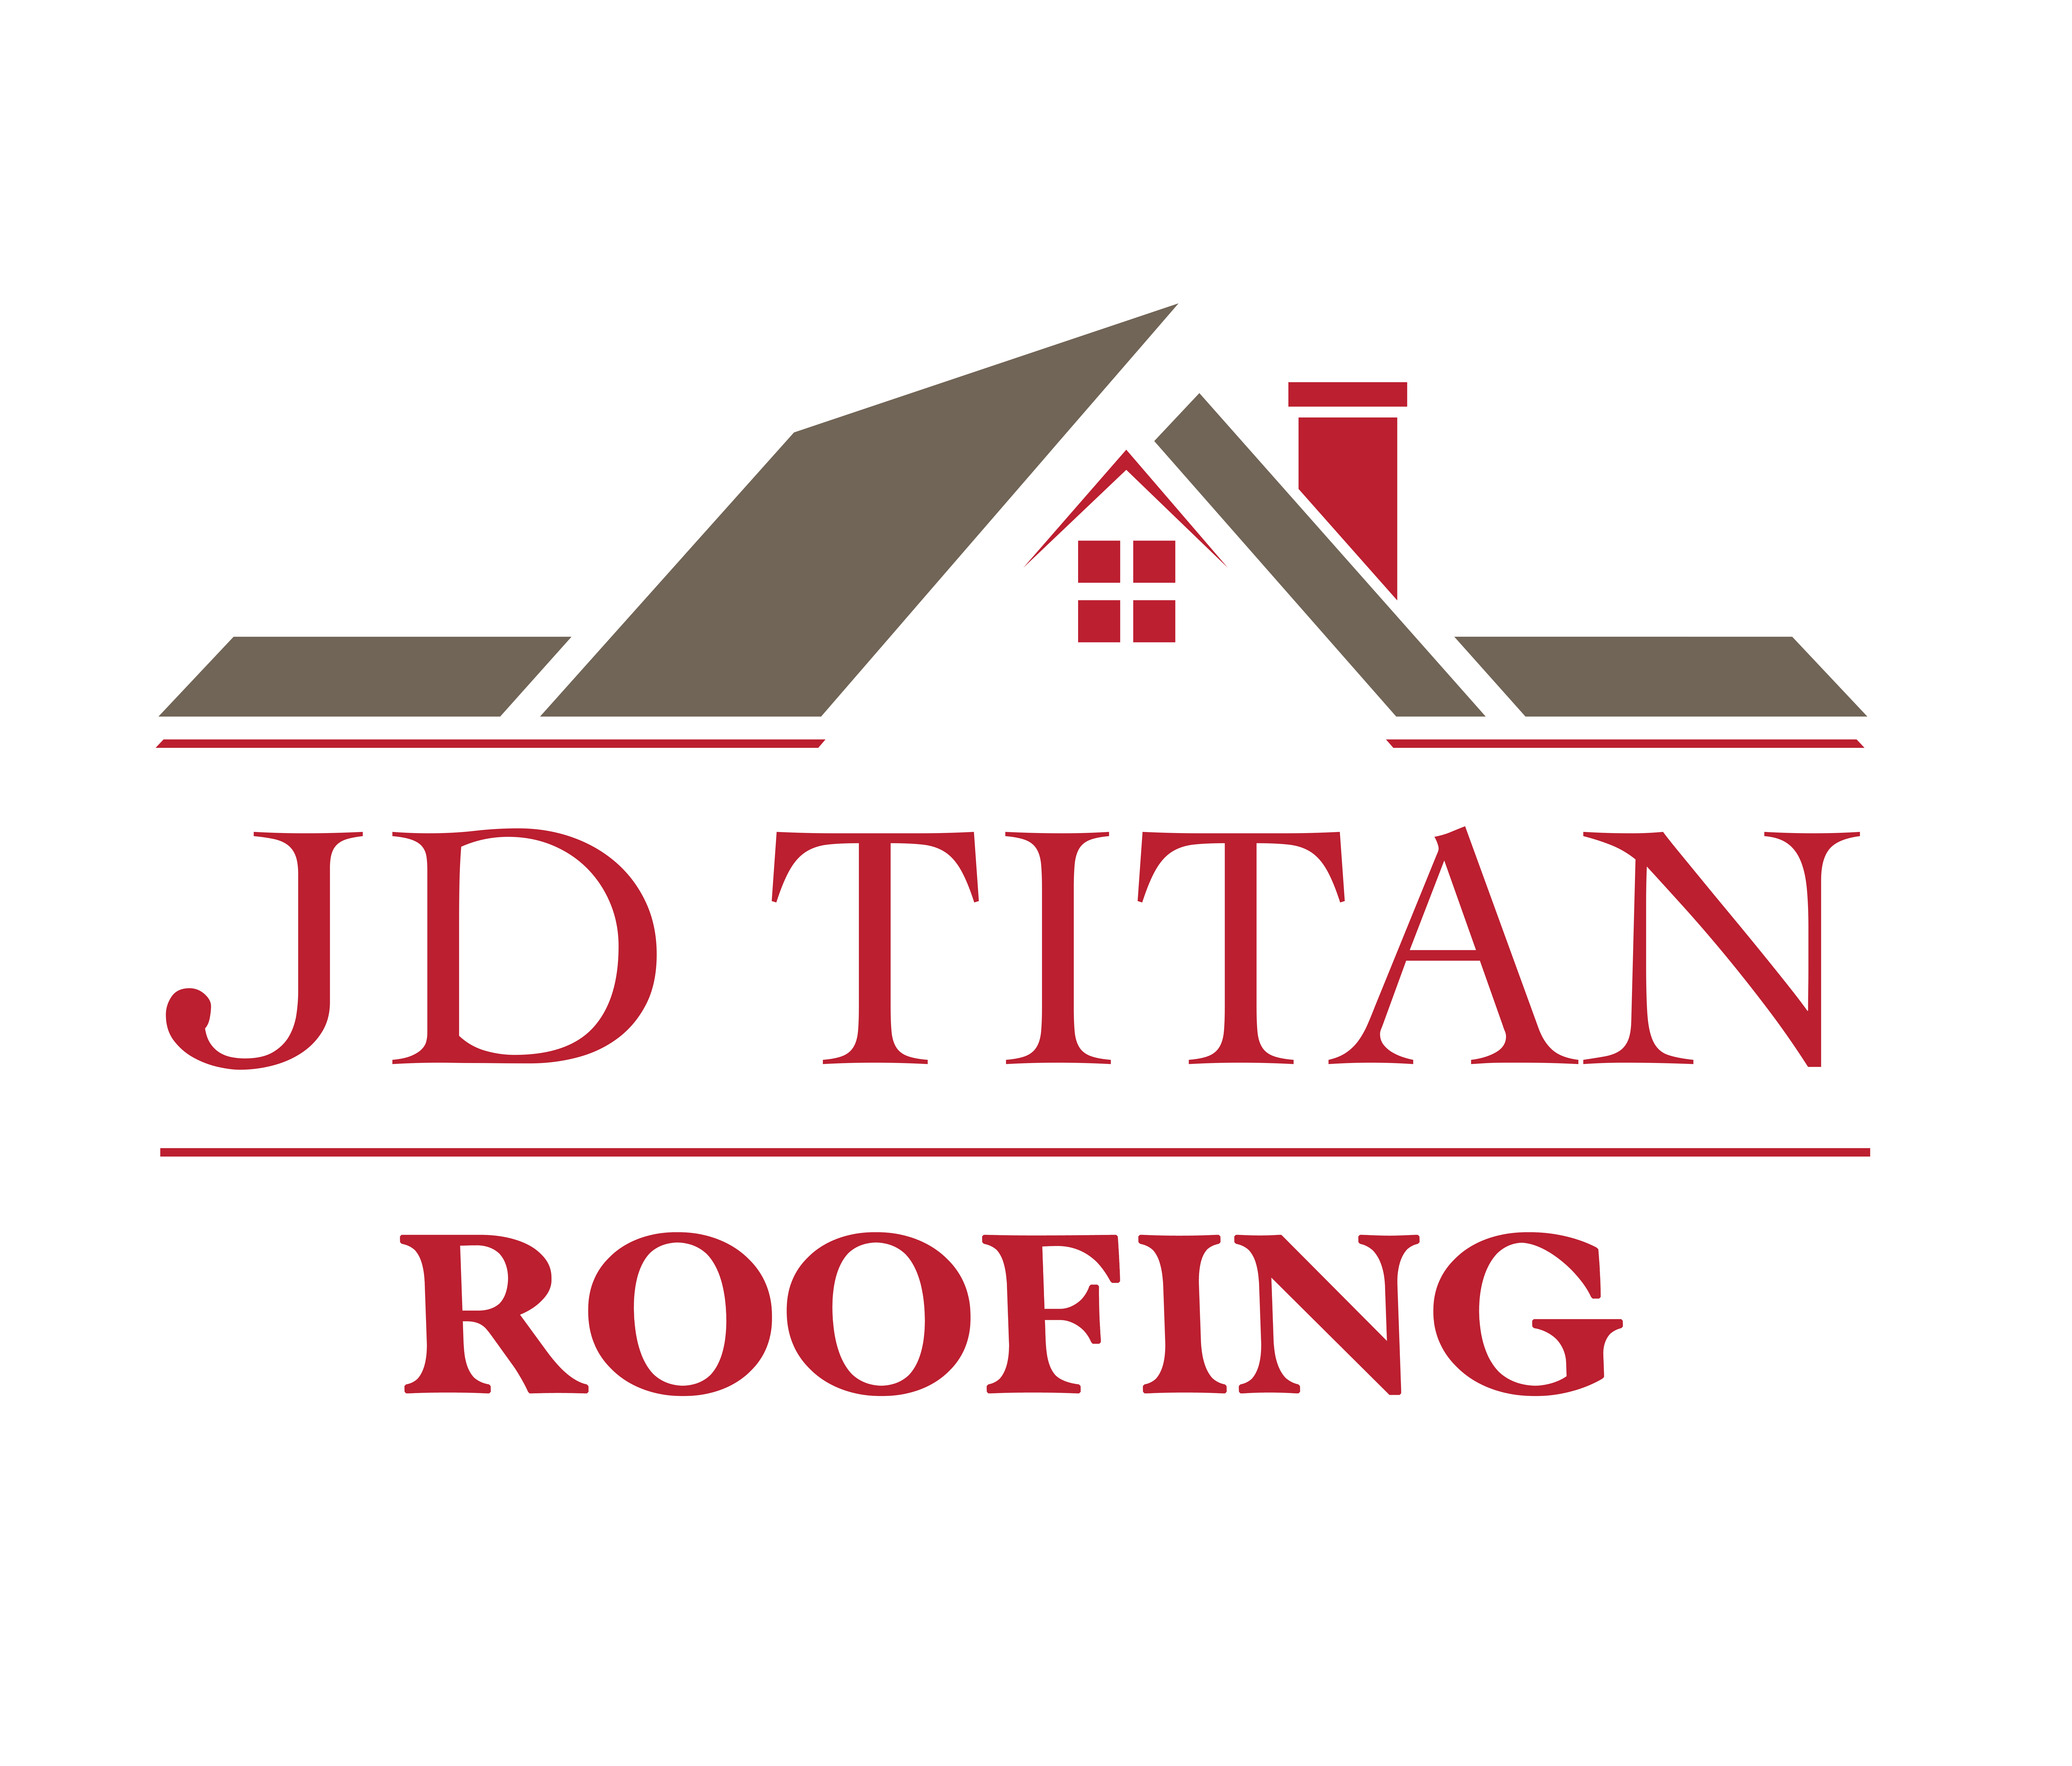 JD TITAN ROOFING